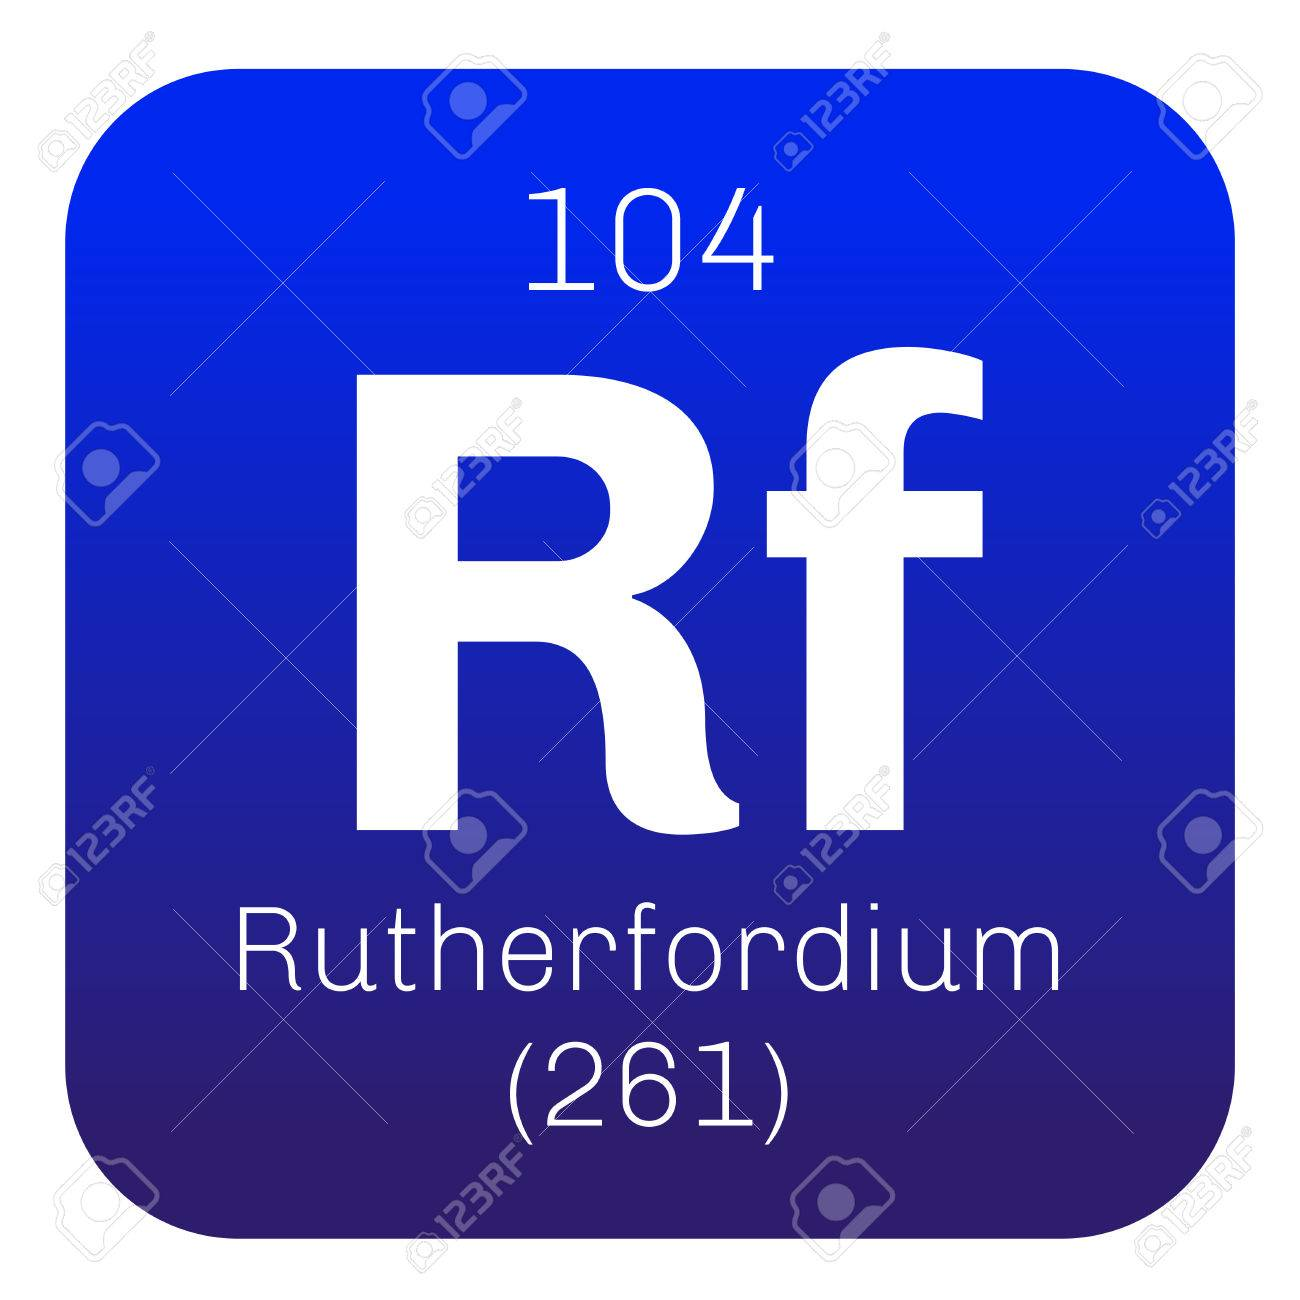 Rutherfordium chemical element radioactive synthetic element chemical element of periodic table rutherfordium chemical element radioactive synthetic element colored icon with atomic number and atomic weight urtaz Choice Image